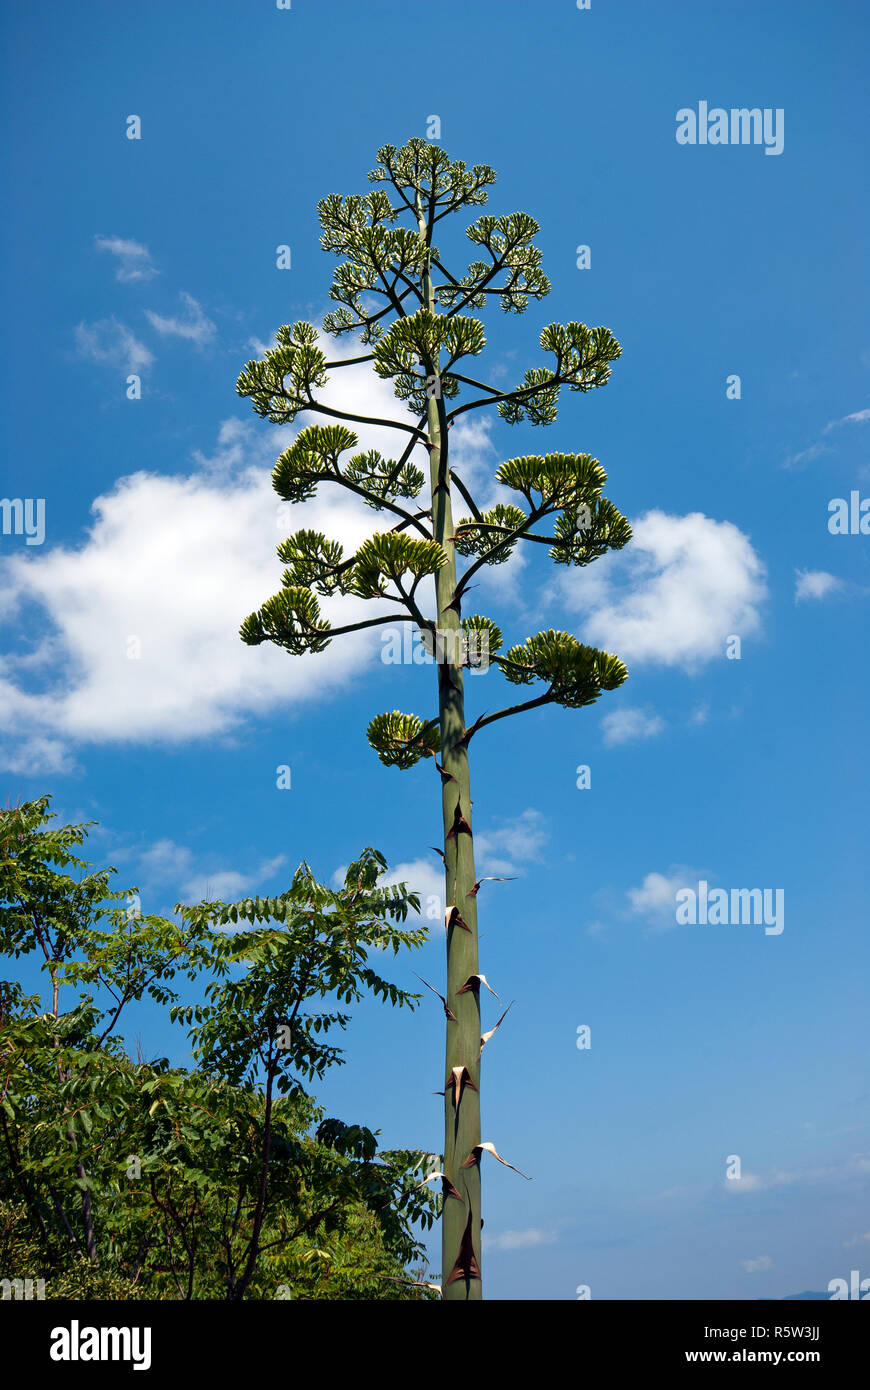 American agave flowering (Agave americana), maguey, promontoty of Argentario, Grosseto, Tuscany, Italy - Stock Image